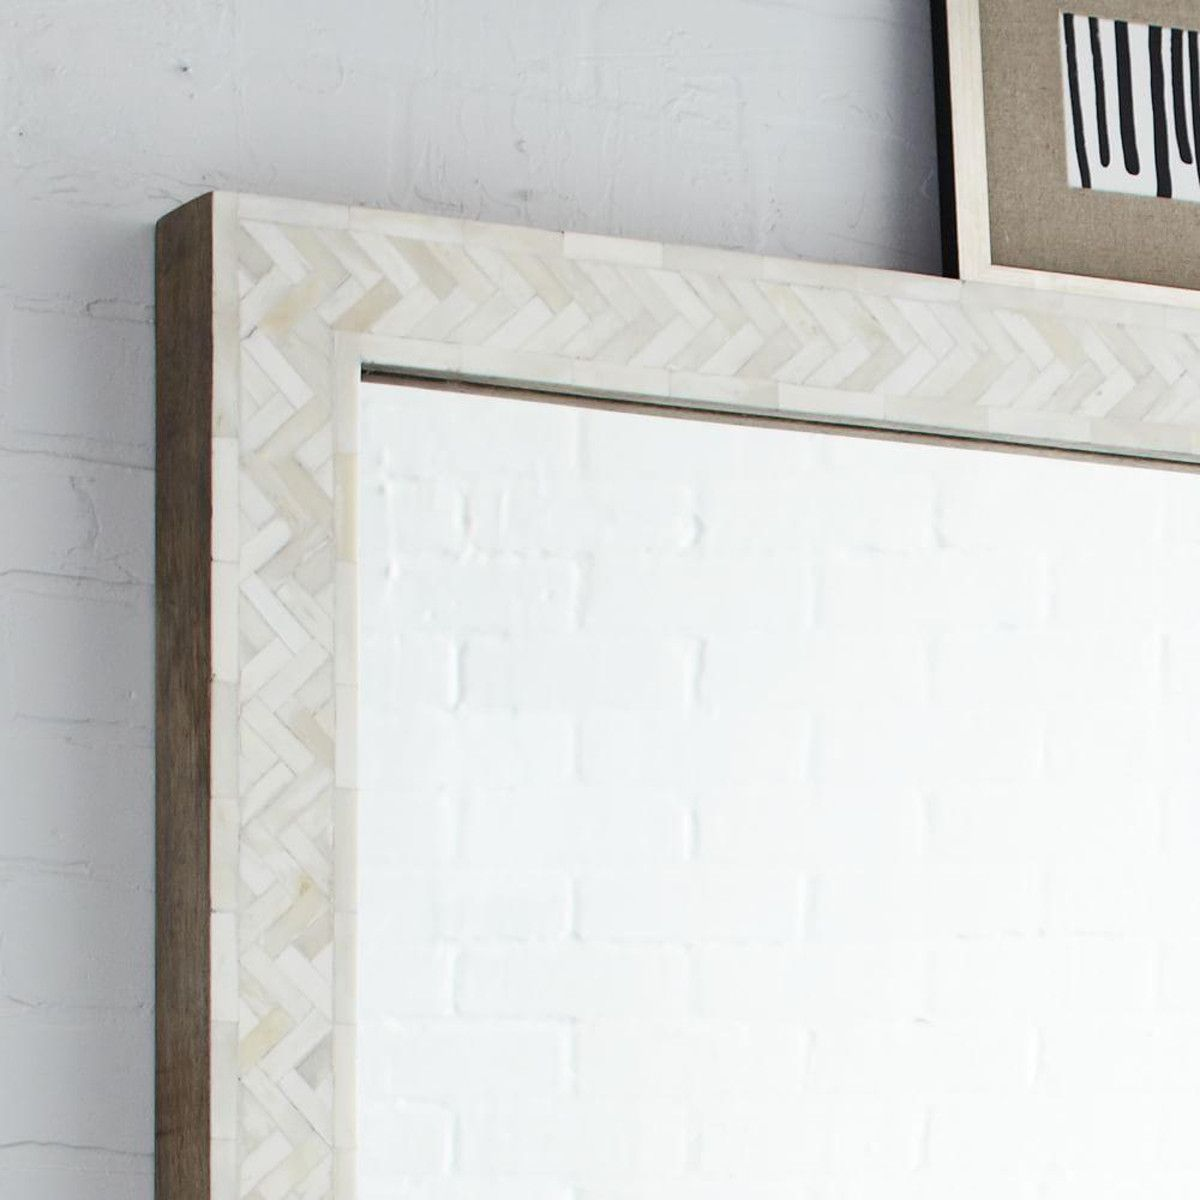 Parsons large wall mirror bone inlay west elm uk chelsea parsons large wall mirror bone inlay west elm uk amipublicfo Image collections